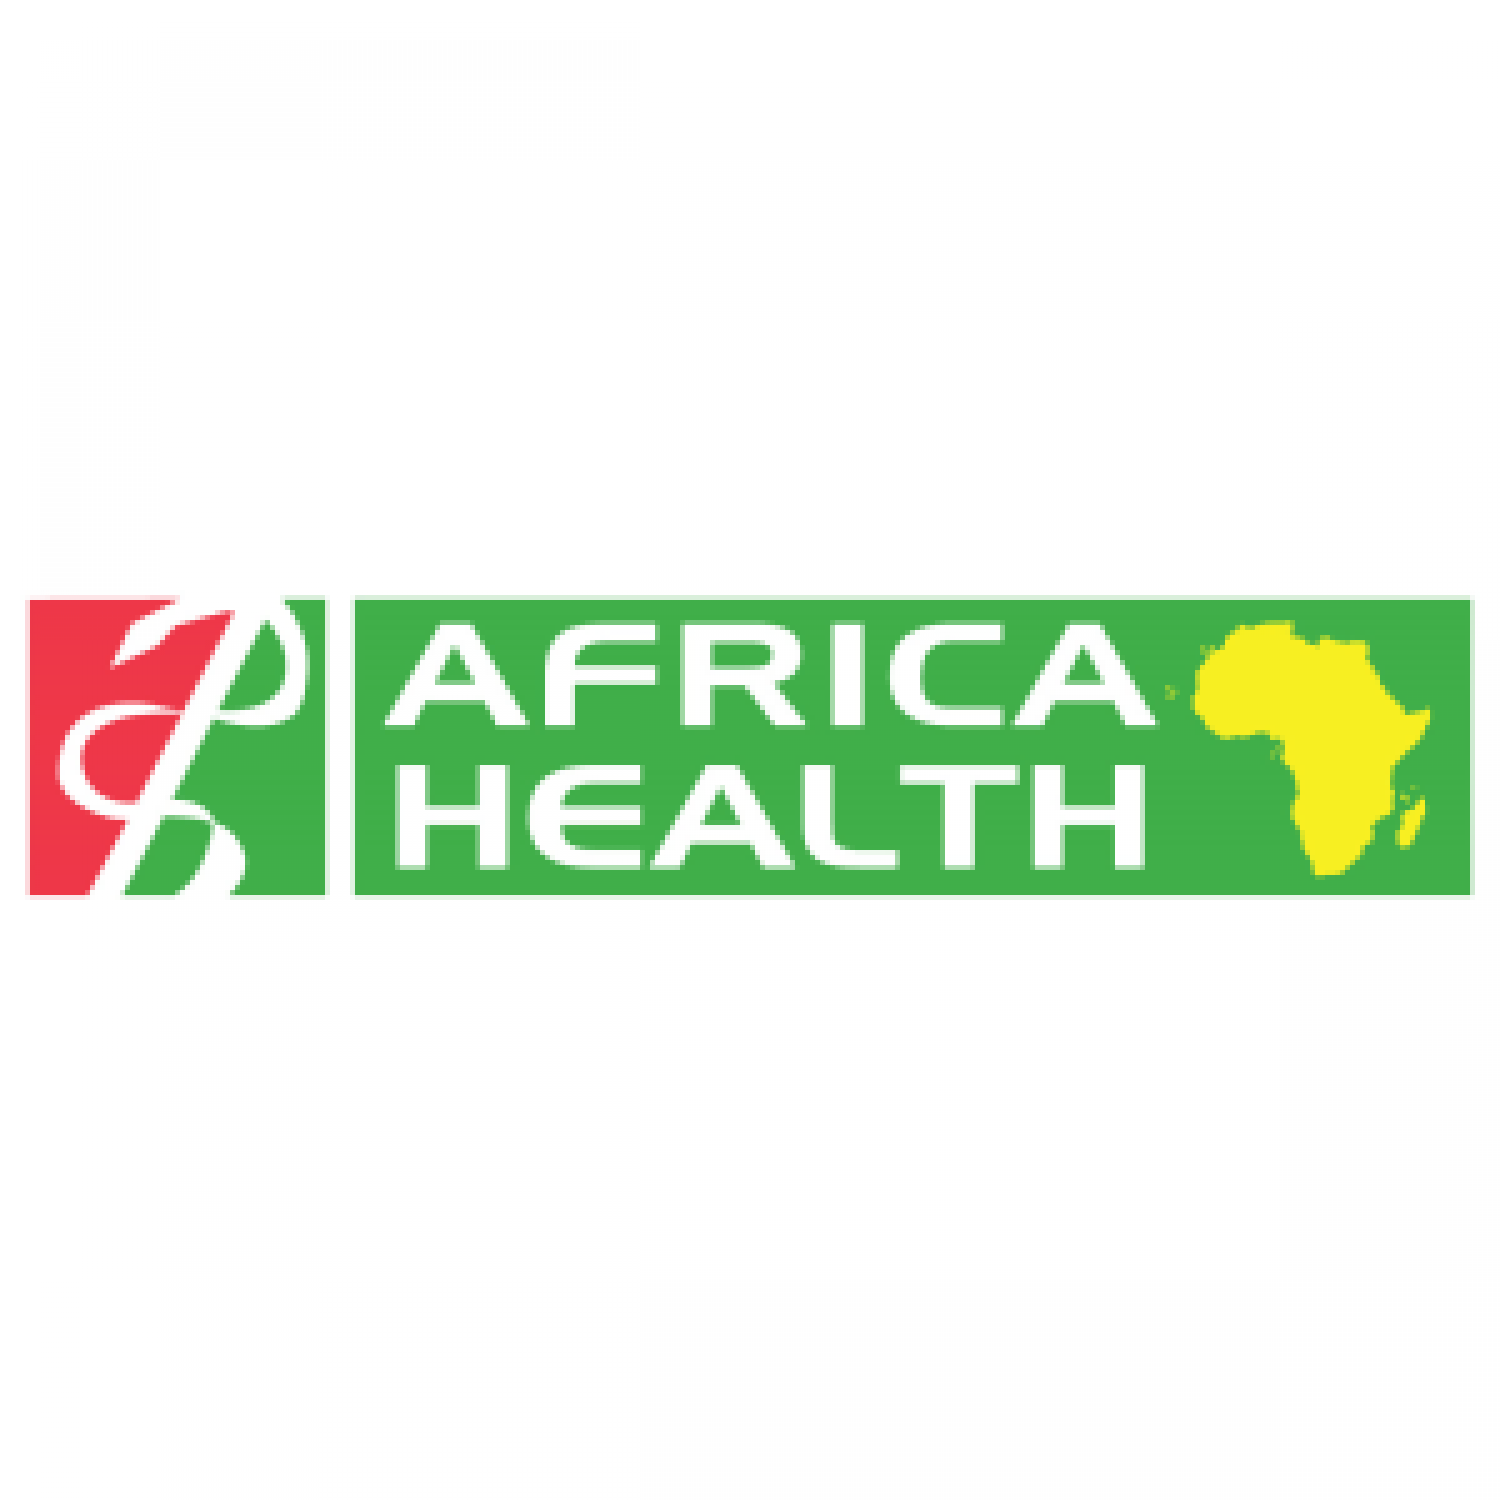 AFRICA HEALTH 2017